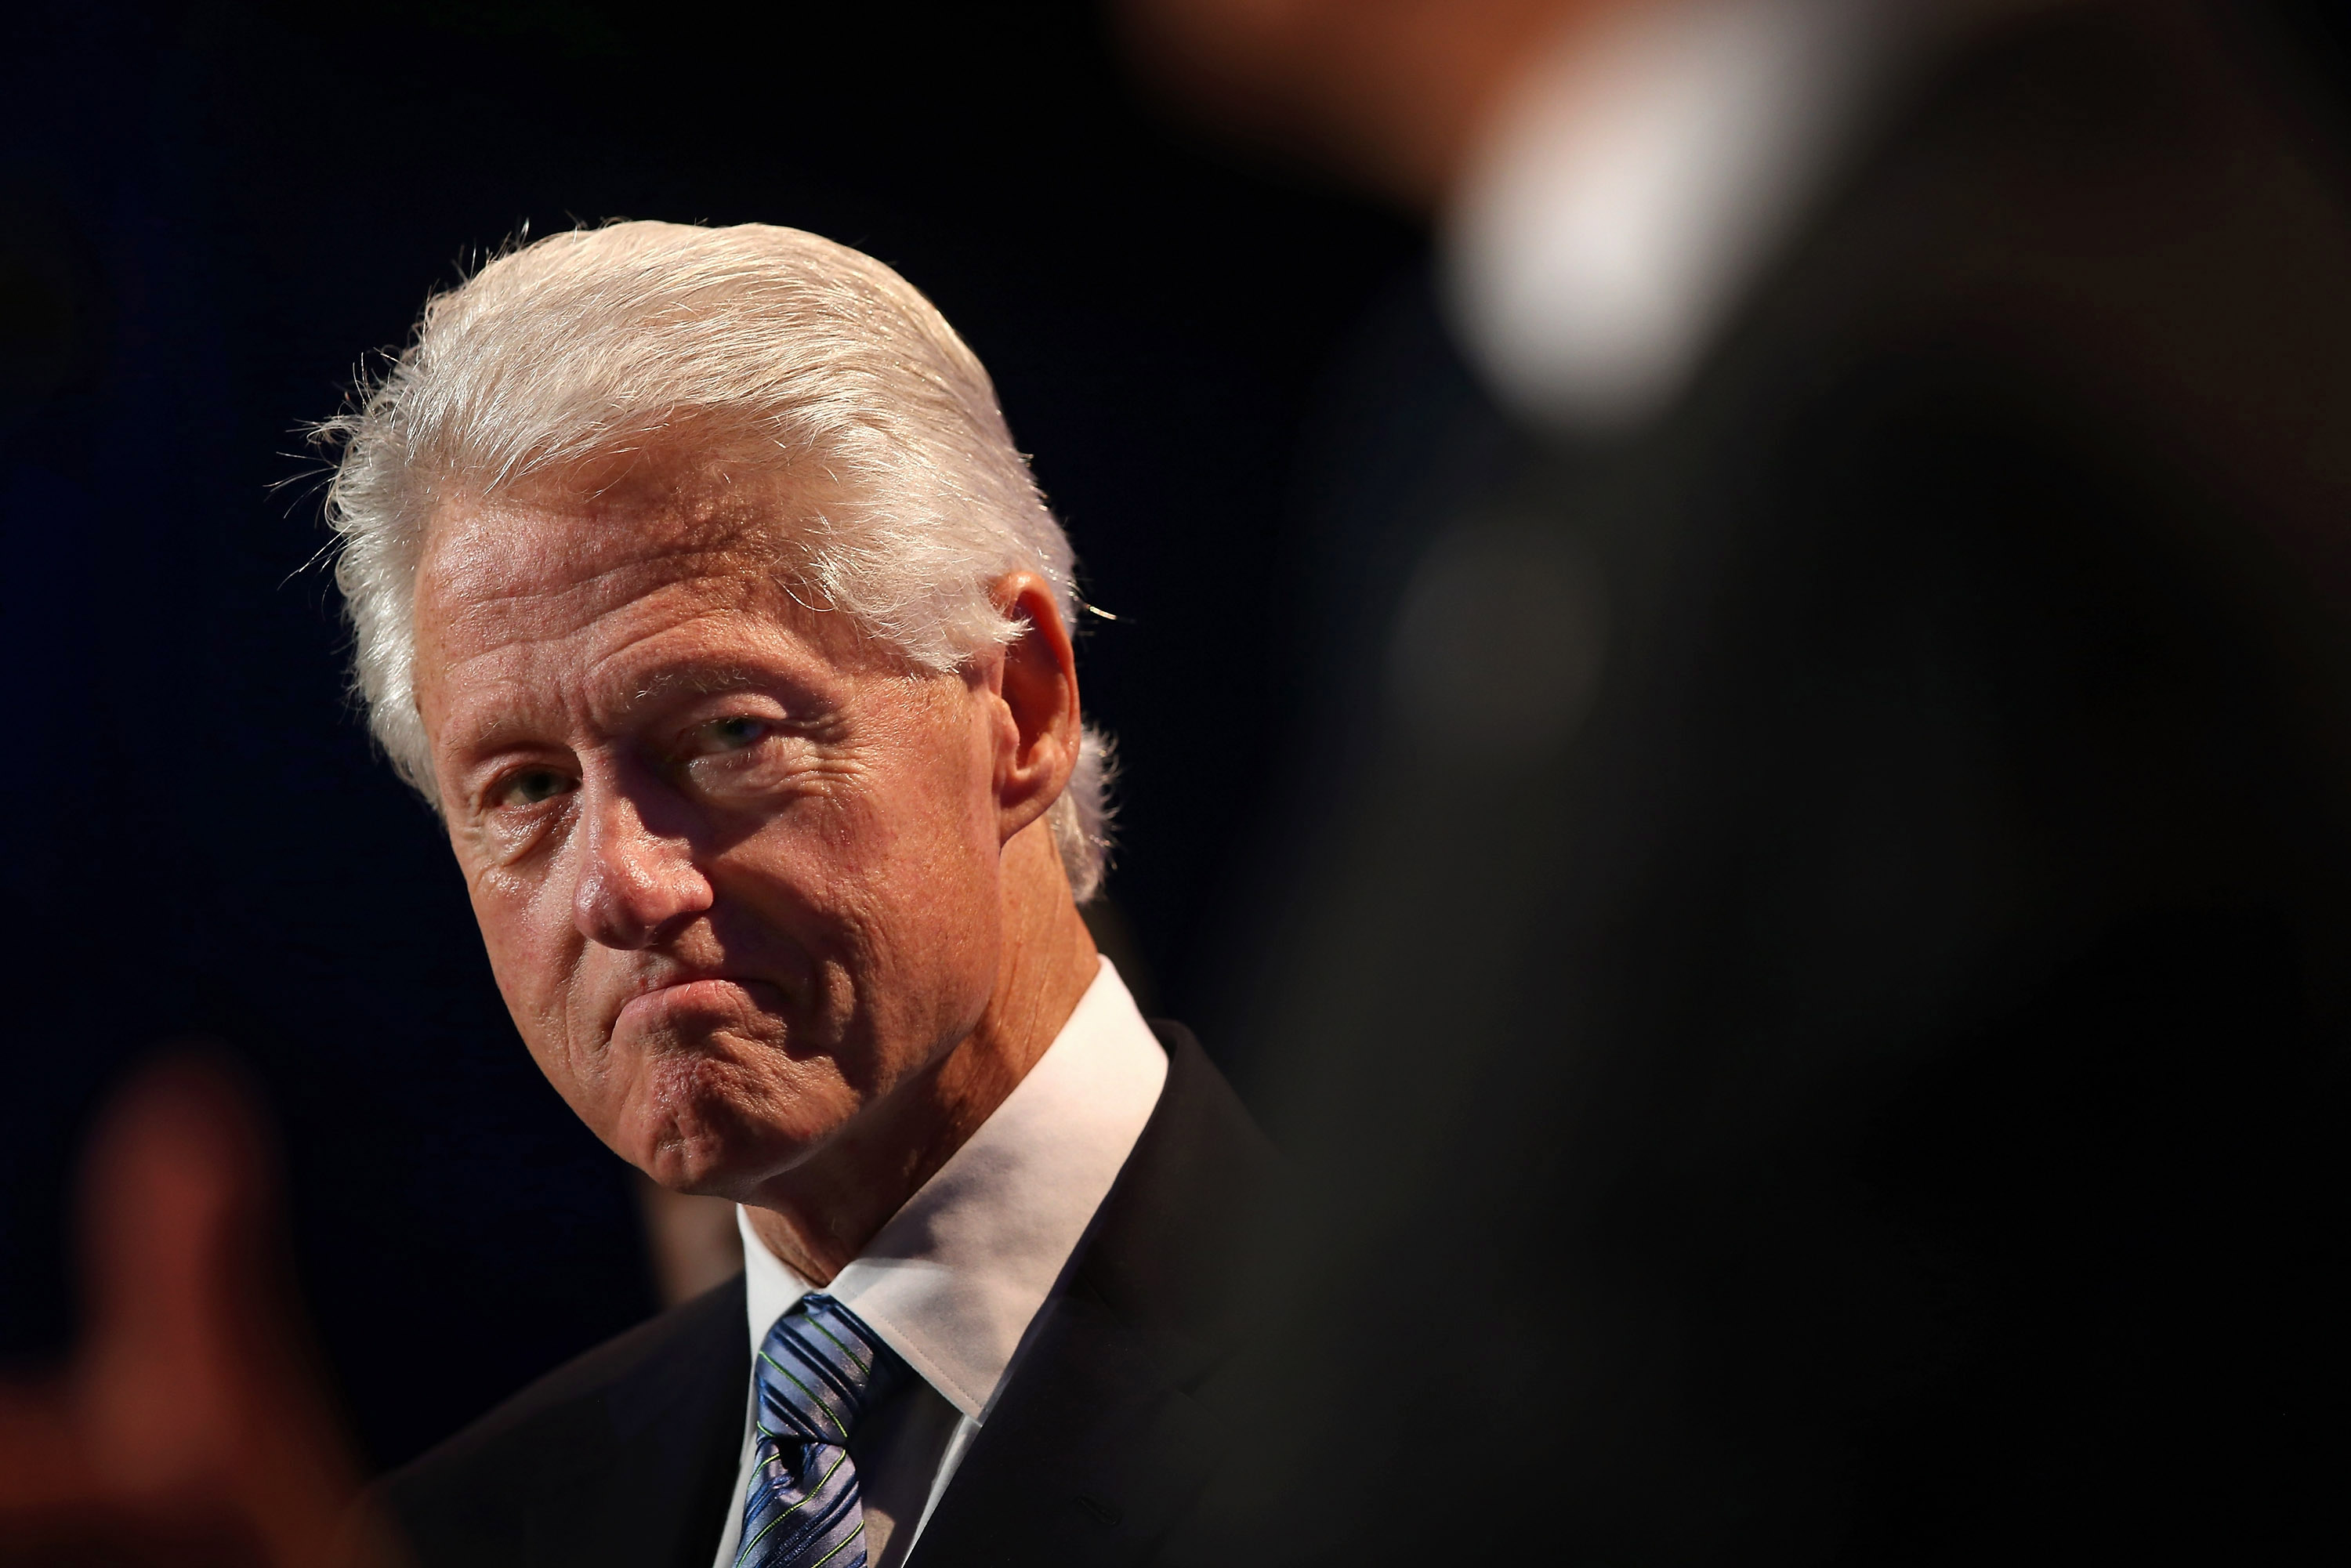 Former President Bill Clinton listens as Chicago Mayor Rahm Emanuel speaks to guests at the Clinton Global Initiative (CGI) on June 13, 2013 in Chicago, Illinois.